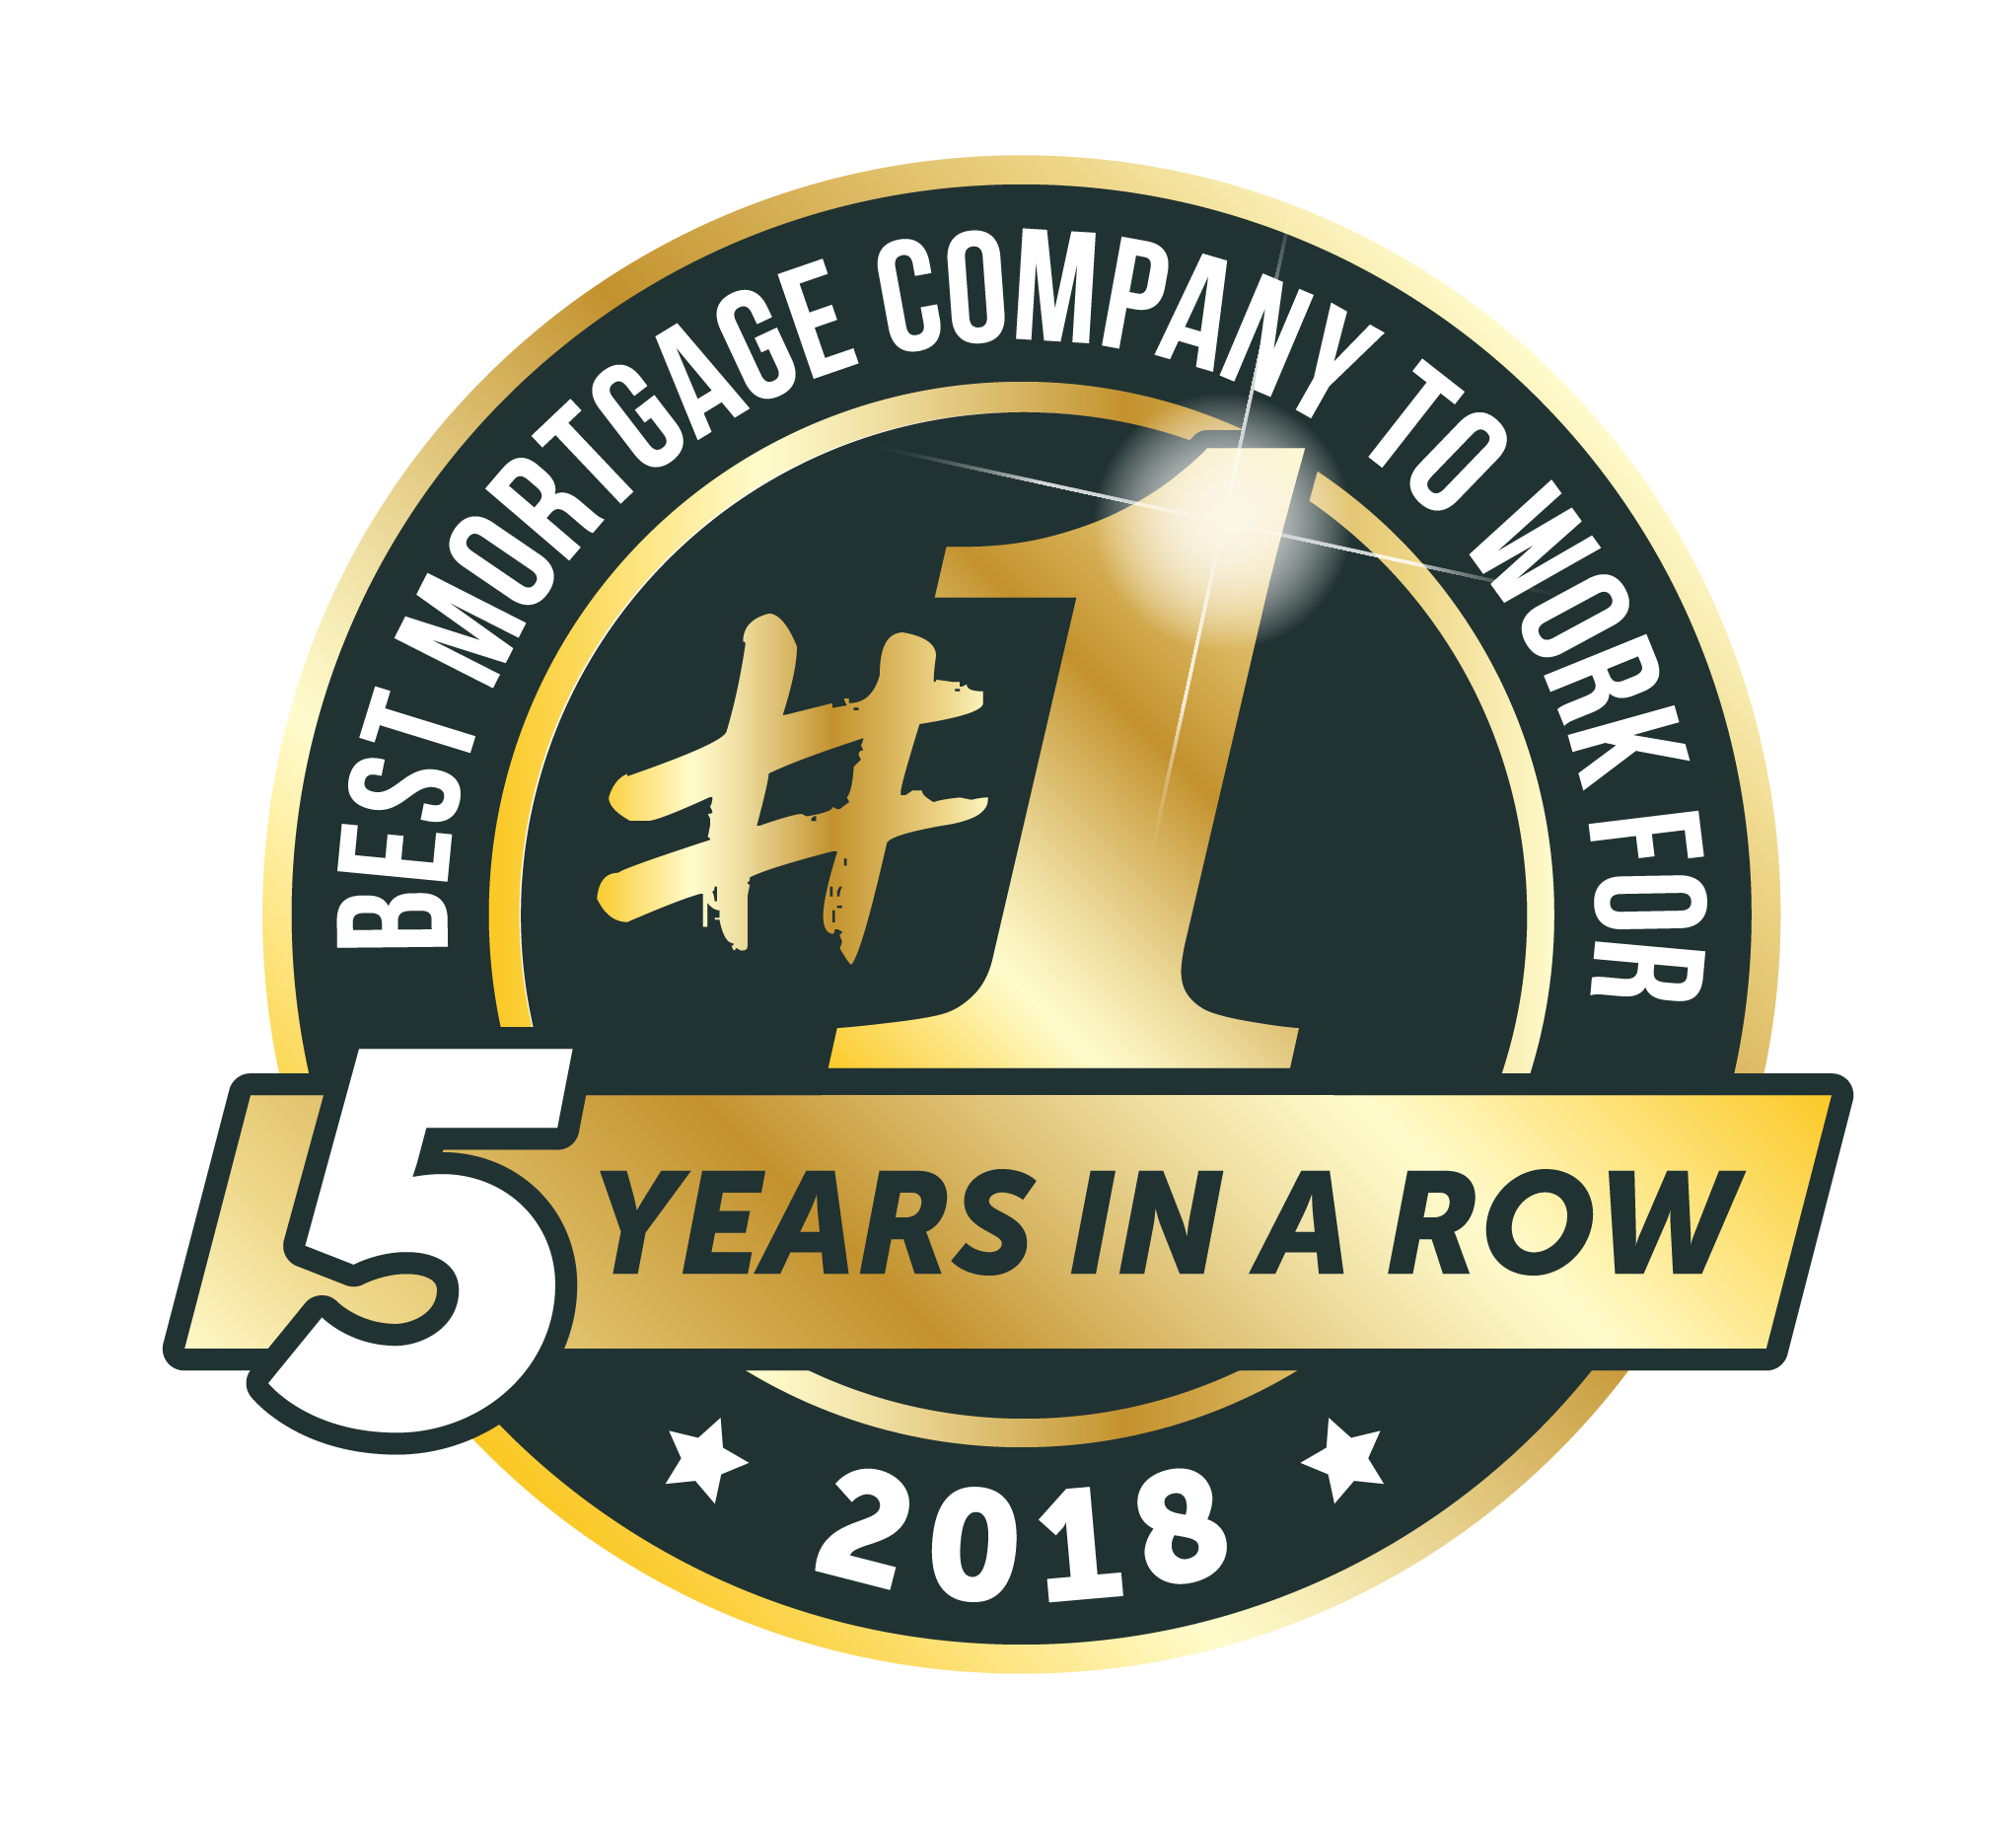 Best_Mortgage_Company_to_Work_For_2018_Color_Transparent